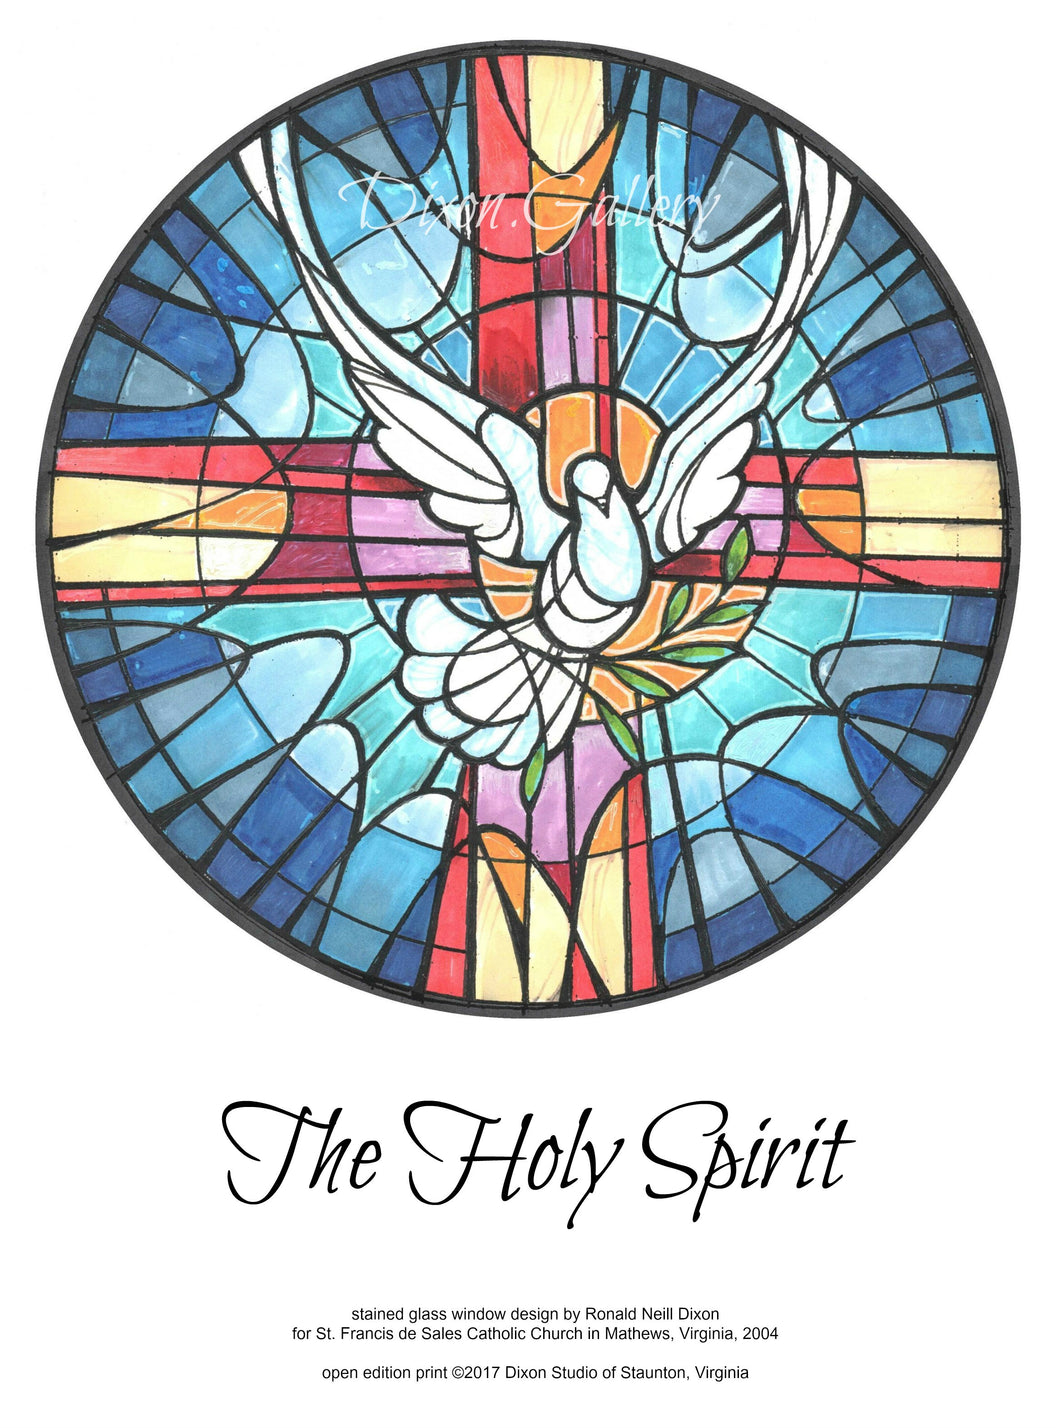 Holy Spirit - open edition print, unframed